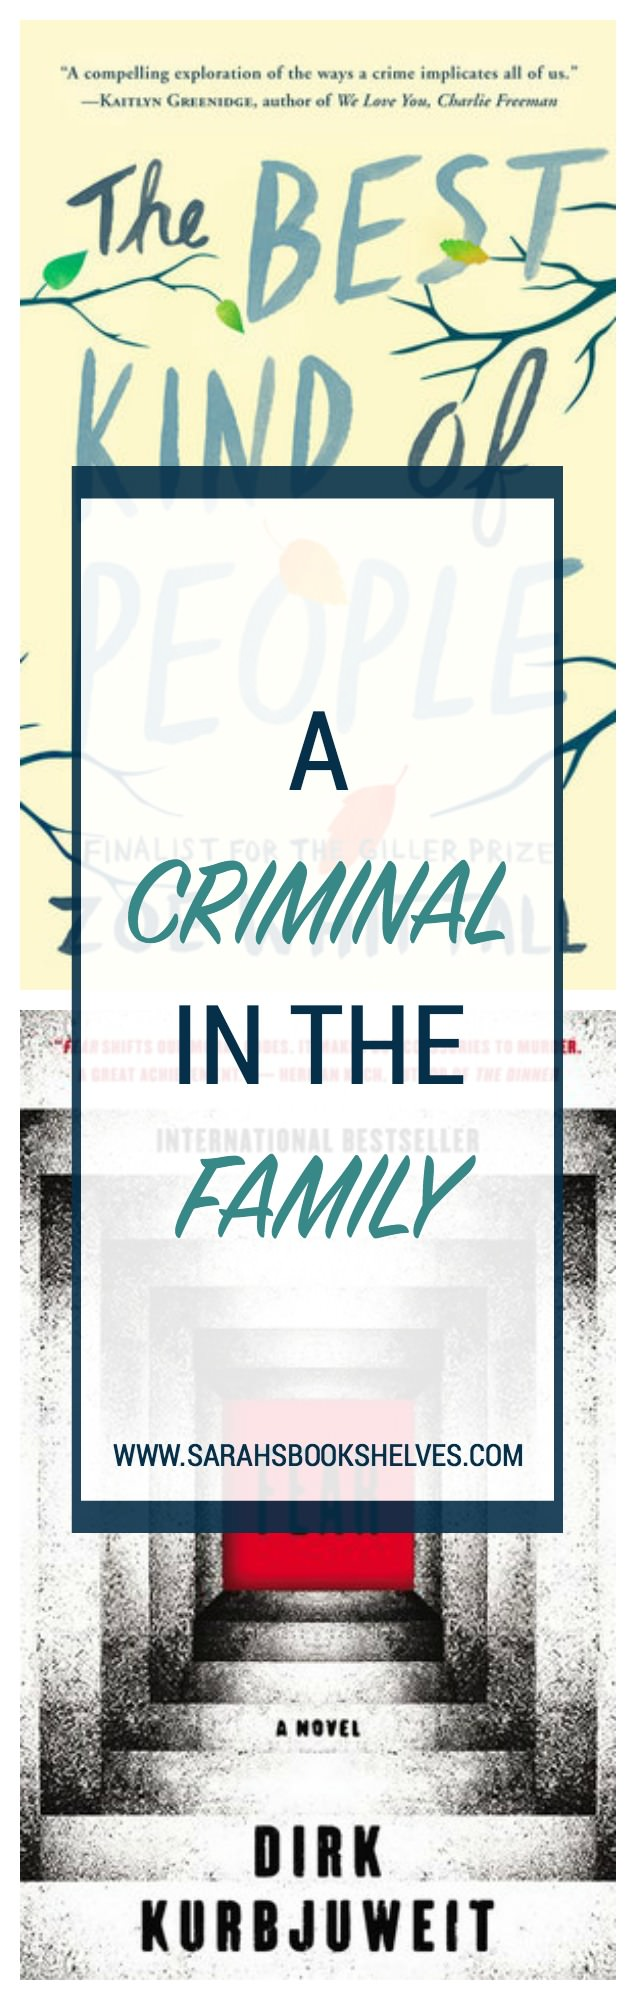 What would you do if a family member is accused of a horrific crime? The Best Kind of People and Fear address this situation in very different ways. #book #bookreview #bookish #bookworms #booklovers #reading